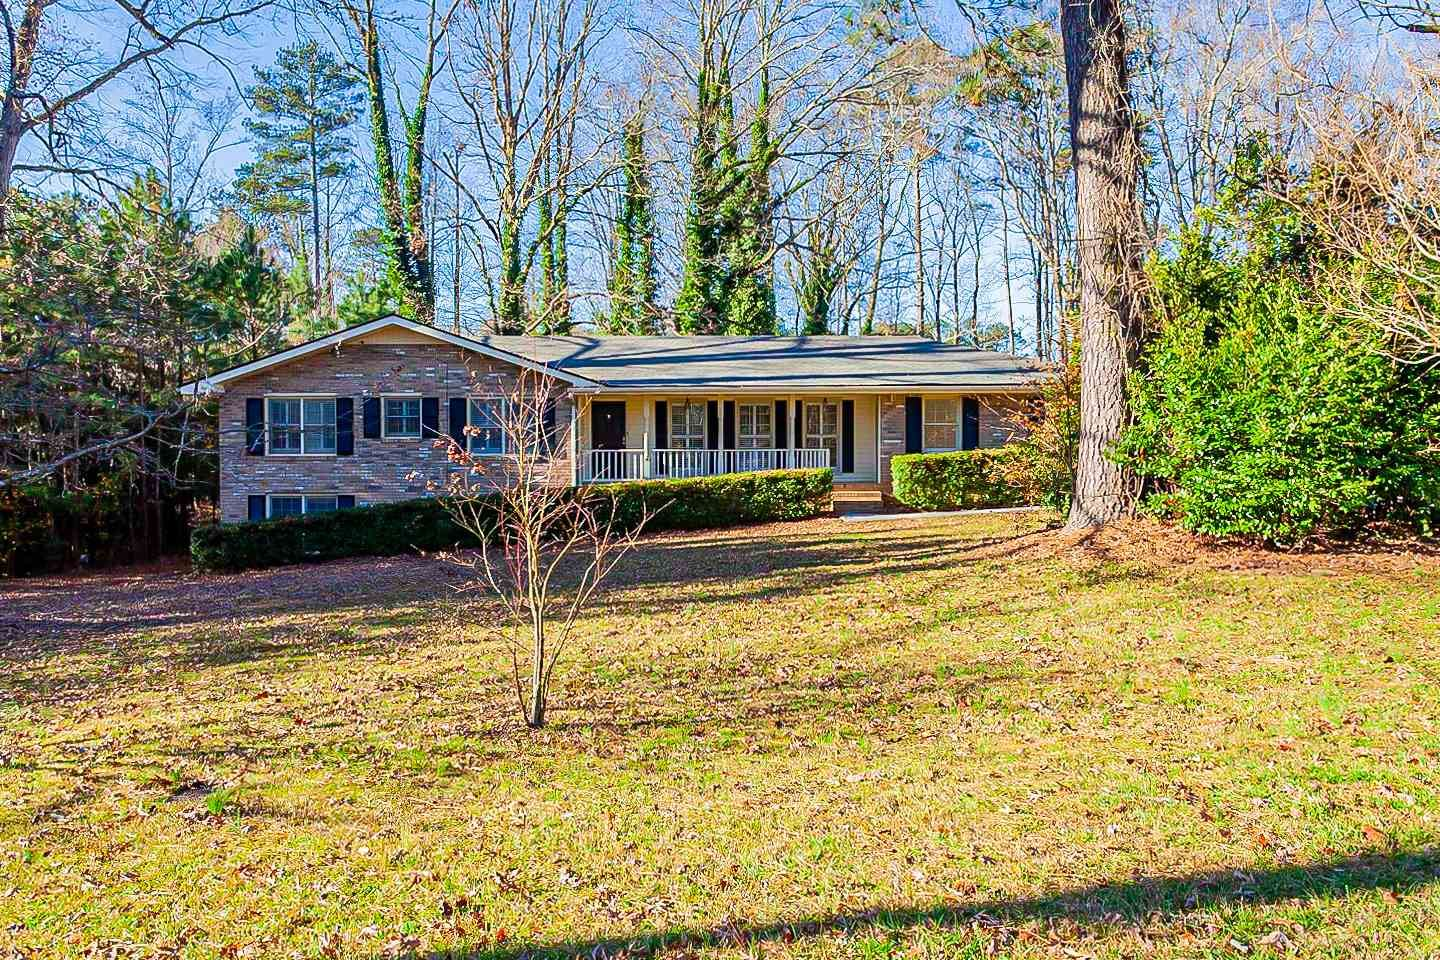 2233 Timber, Snellville, GA 30078 - MLS#: 8910251